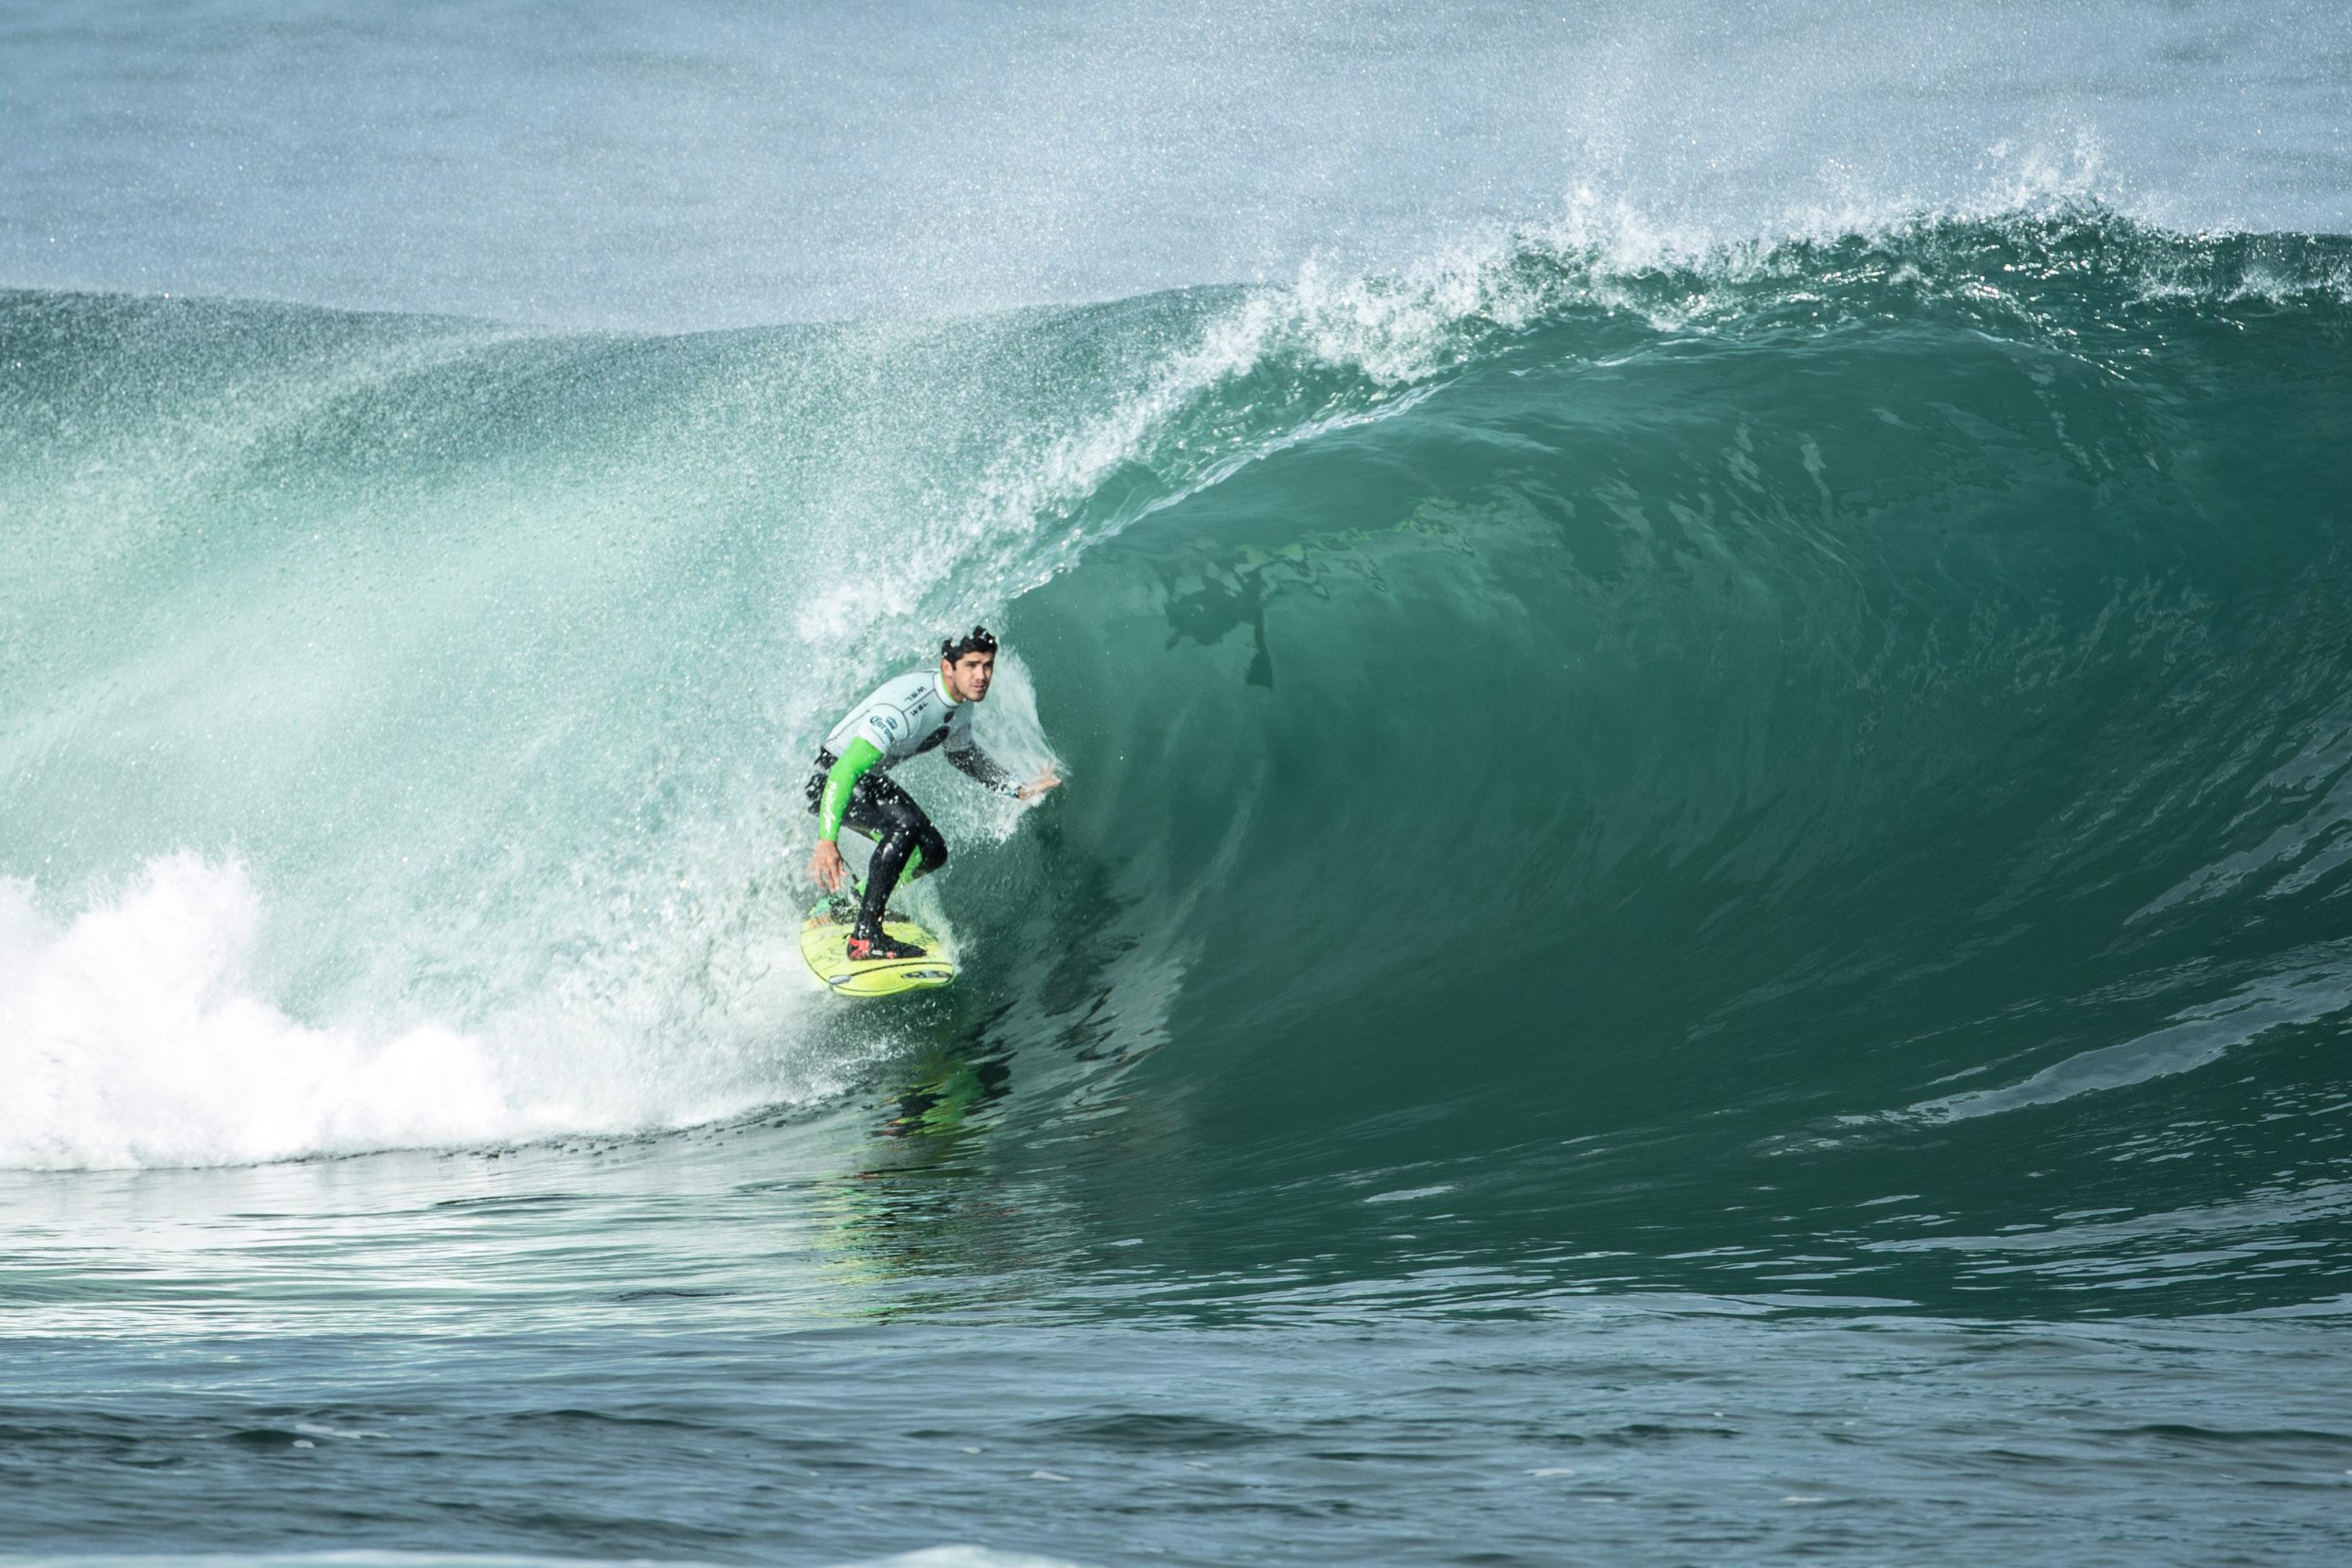 Manuel Selman - Maui and Sons Arica Pro Tour